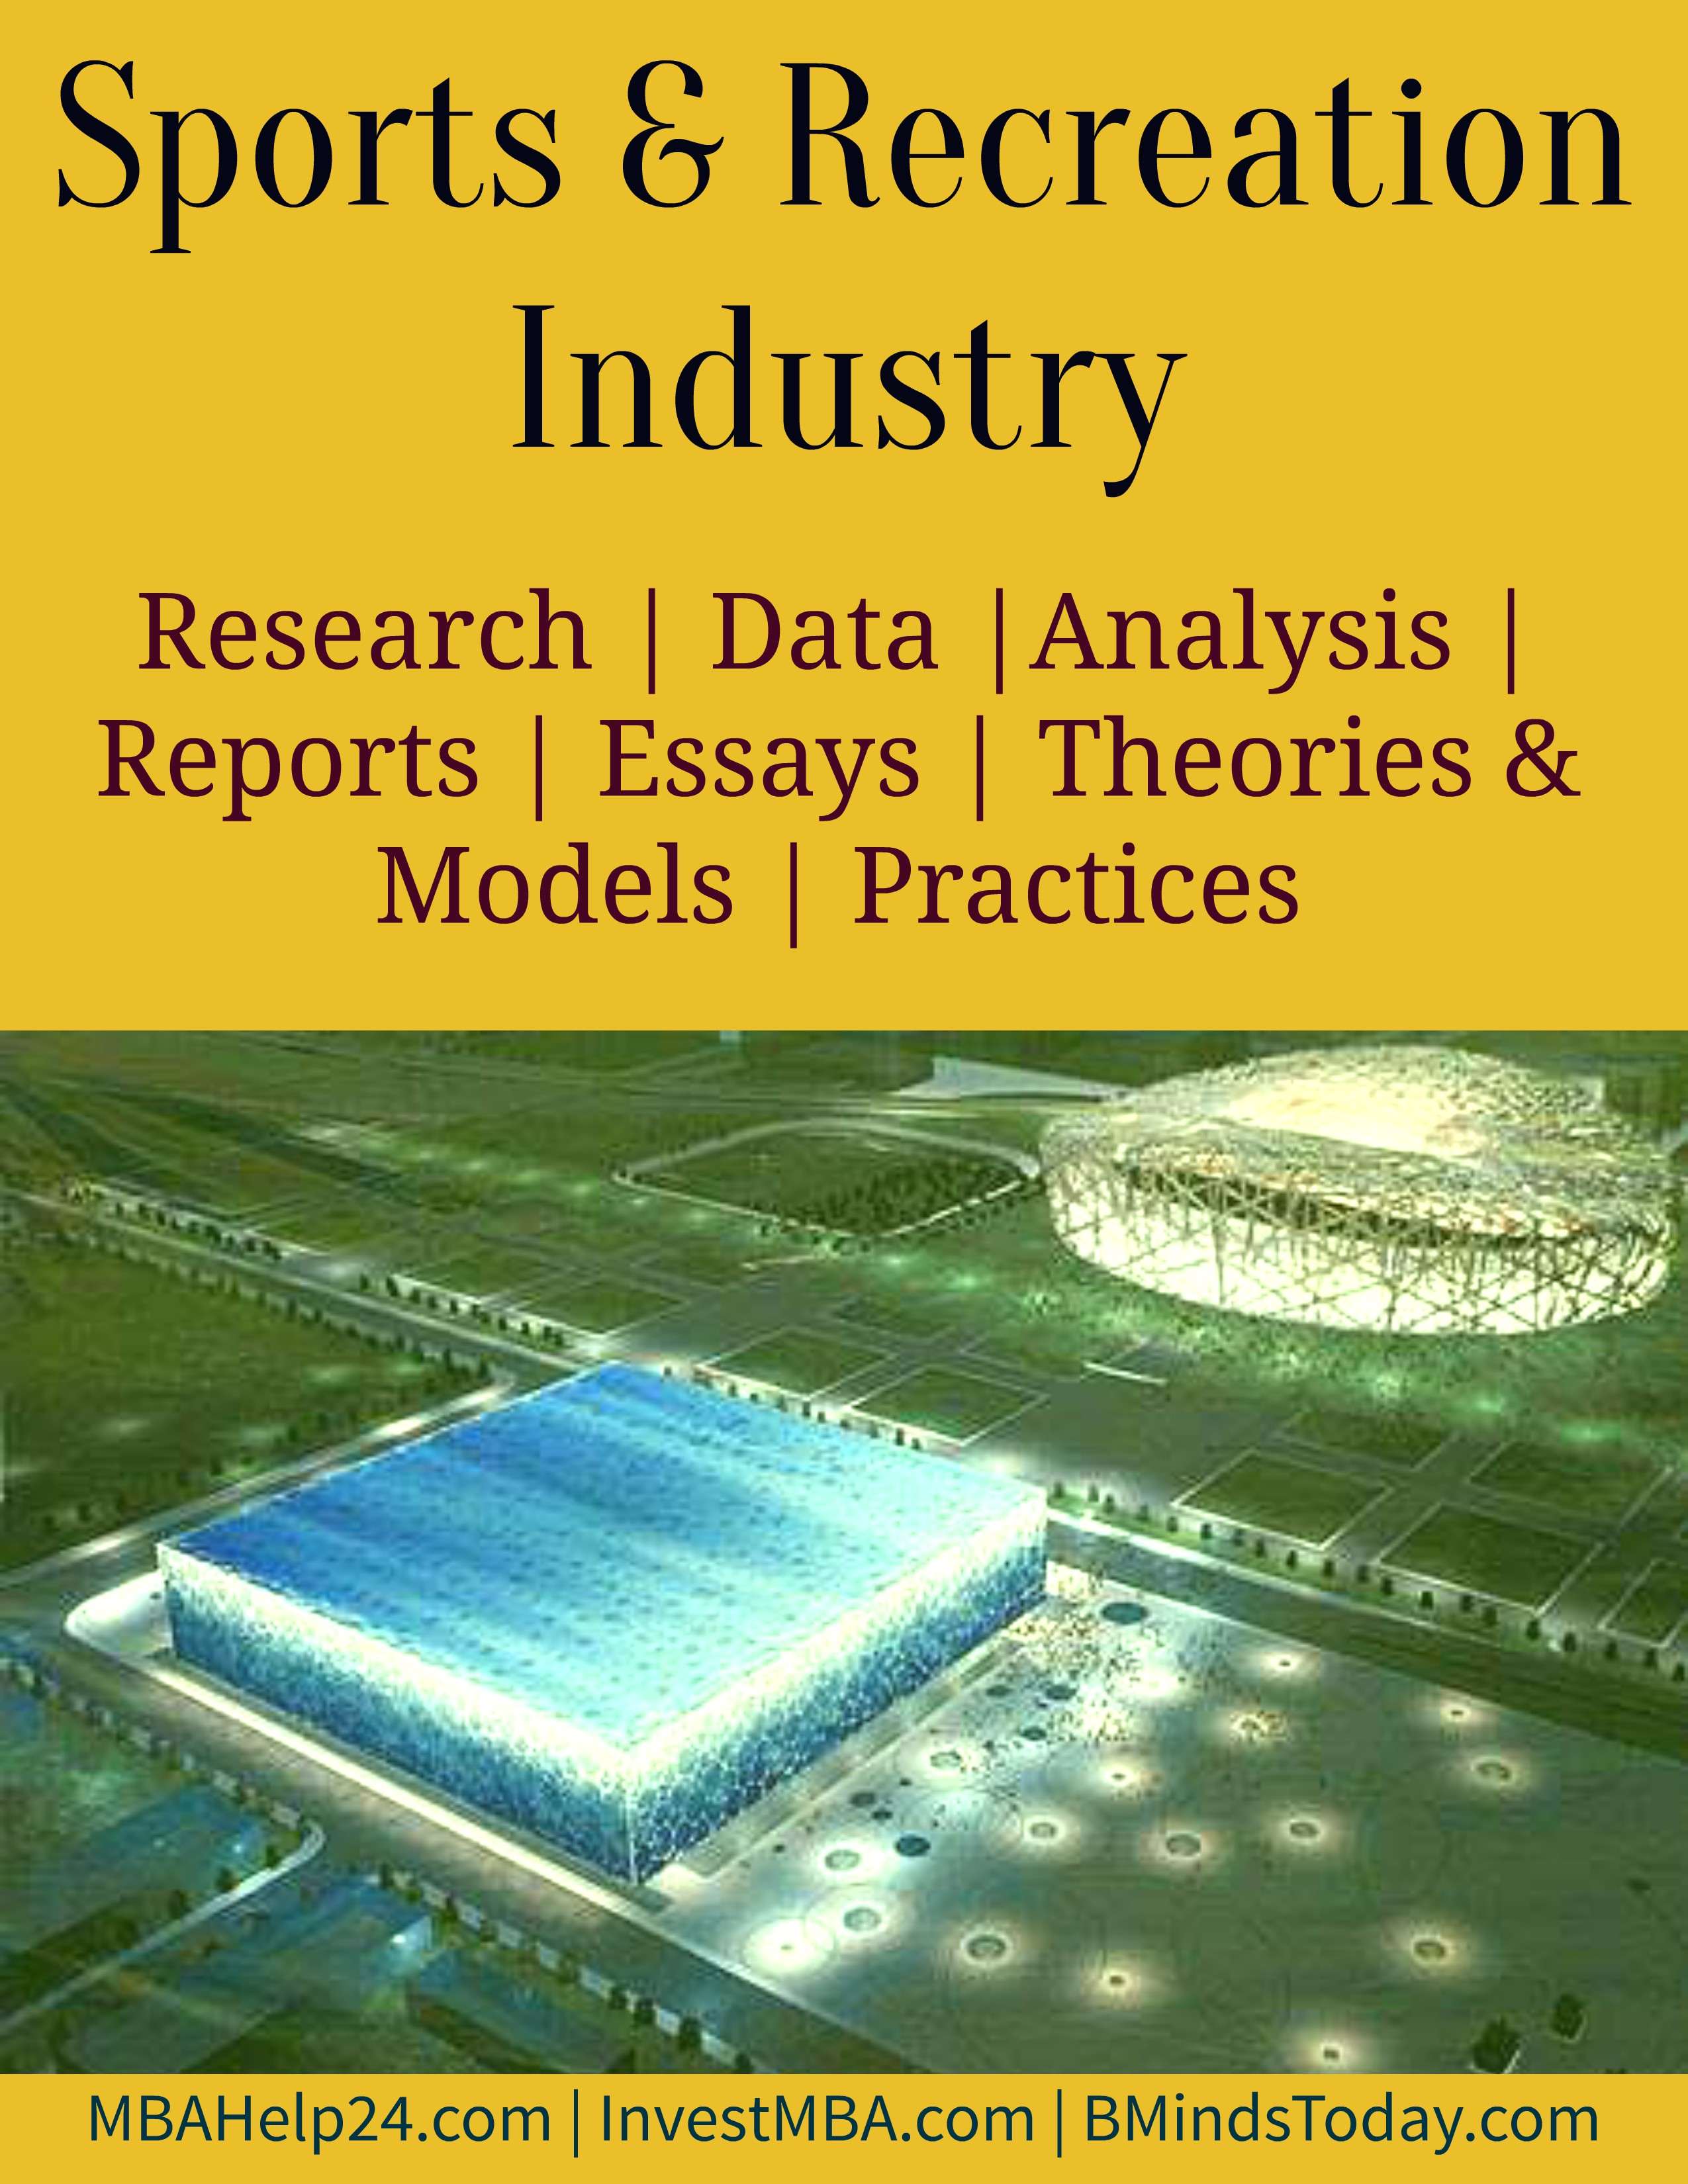 Sports and Recreation Industry Sports Sports and Recreation Industry Sports and Recreation Industry